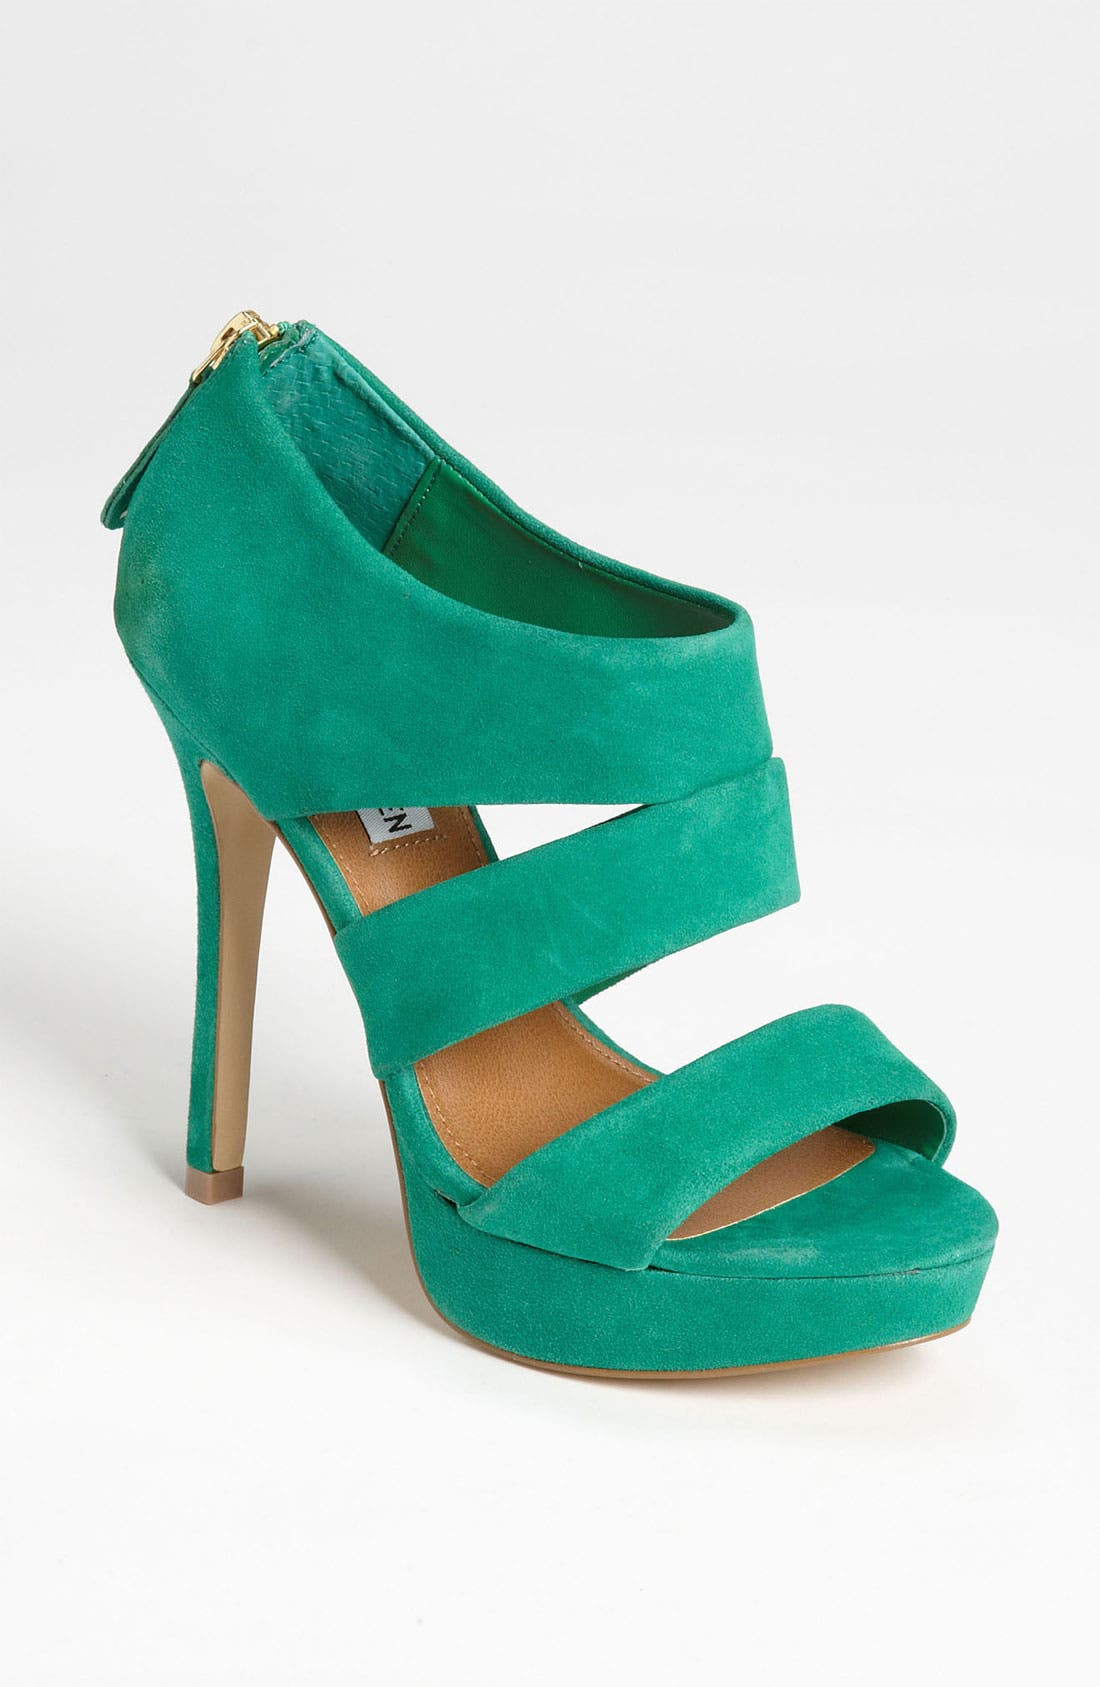 Alternate Image 1 Selected - Steve Madden 'Buzzzer' Pump